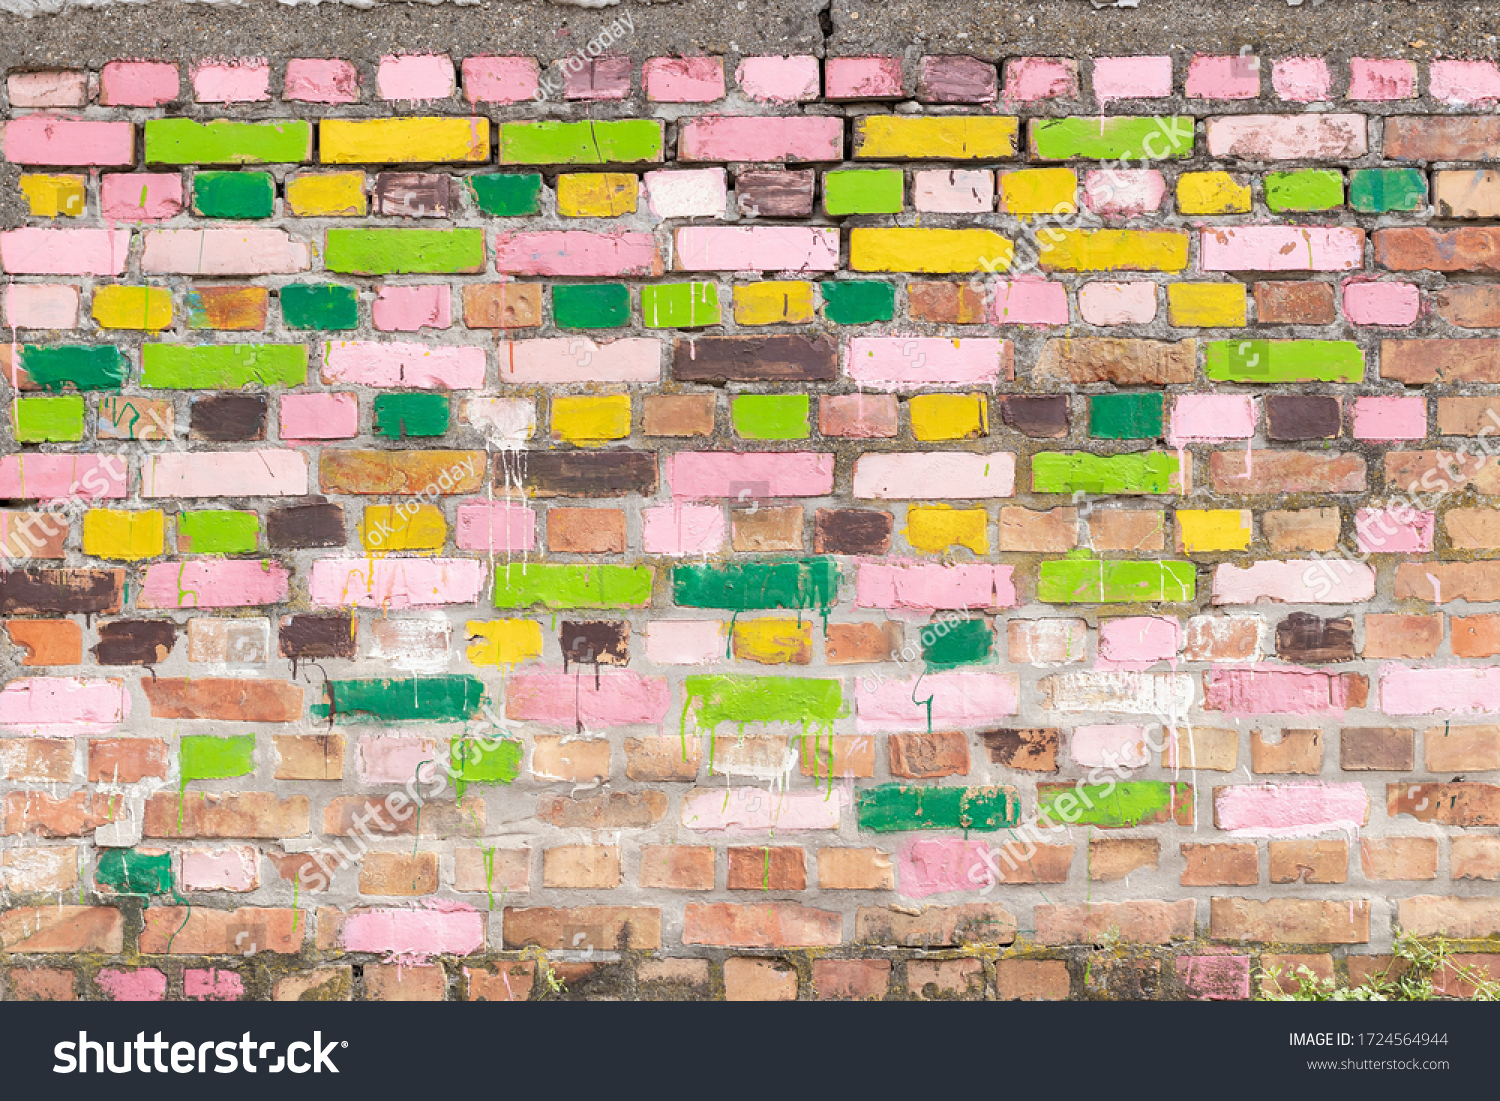 stock-photo-brick-wall-with-bricks-paint